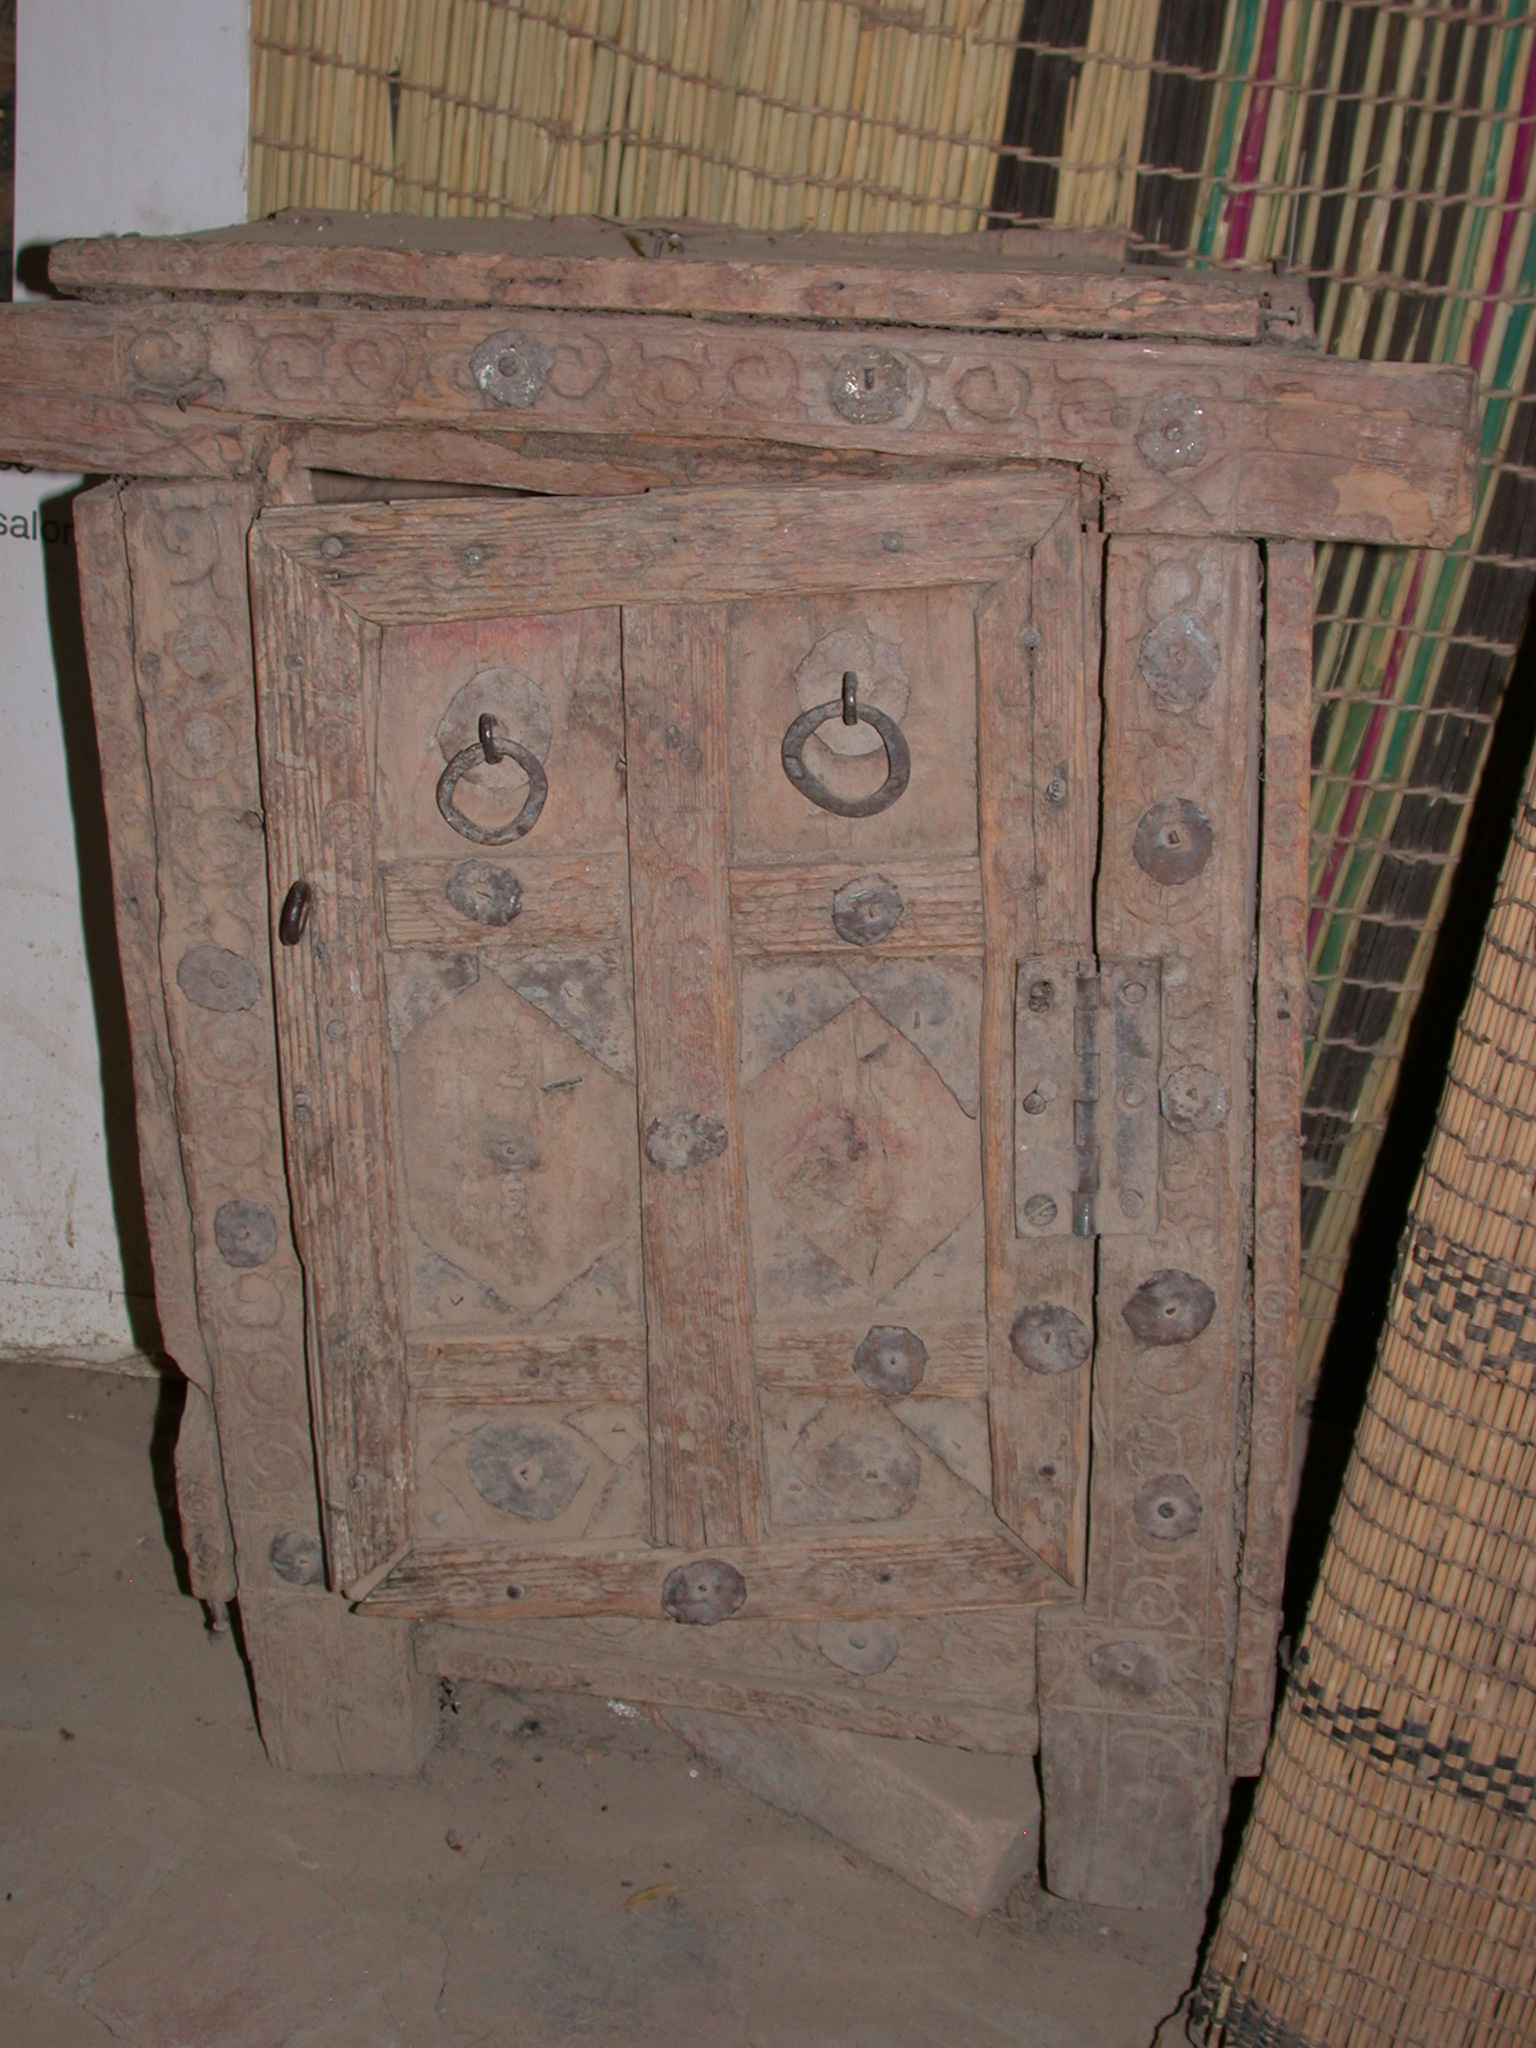 Traditional Decorated Wooden Cabinet and Door, Timbuktu Ethnological Museum, Timbuktu, Mali